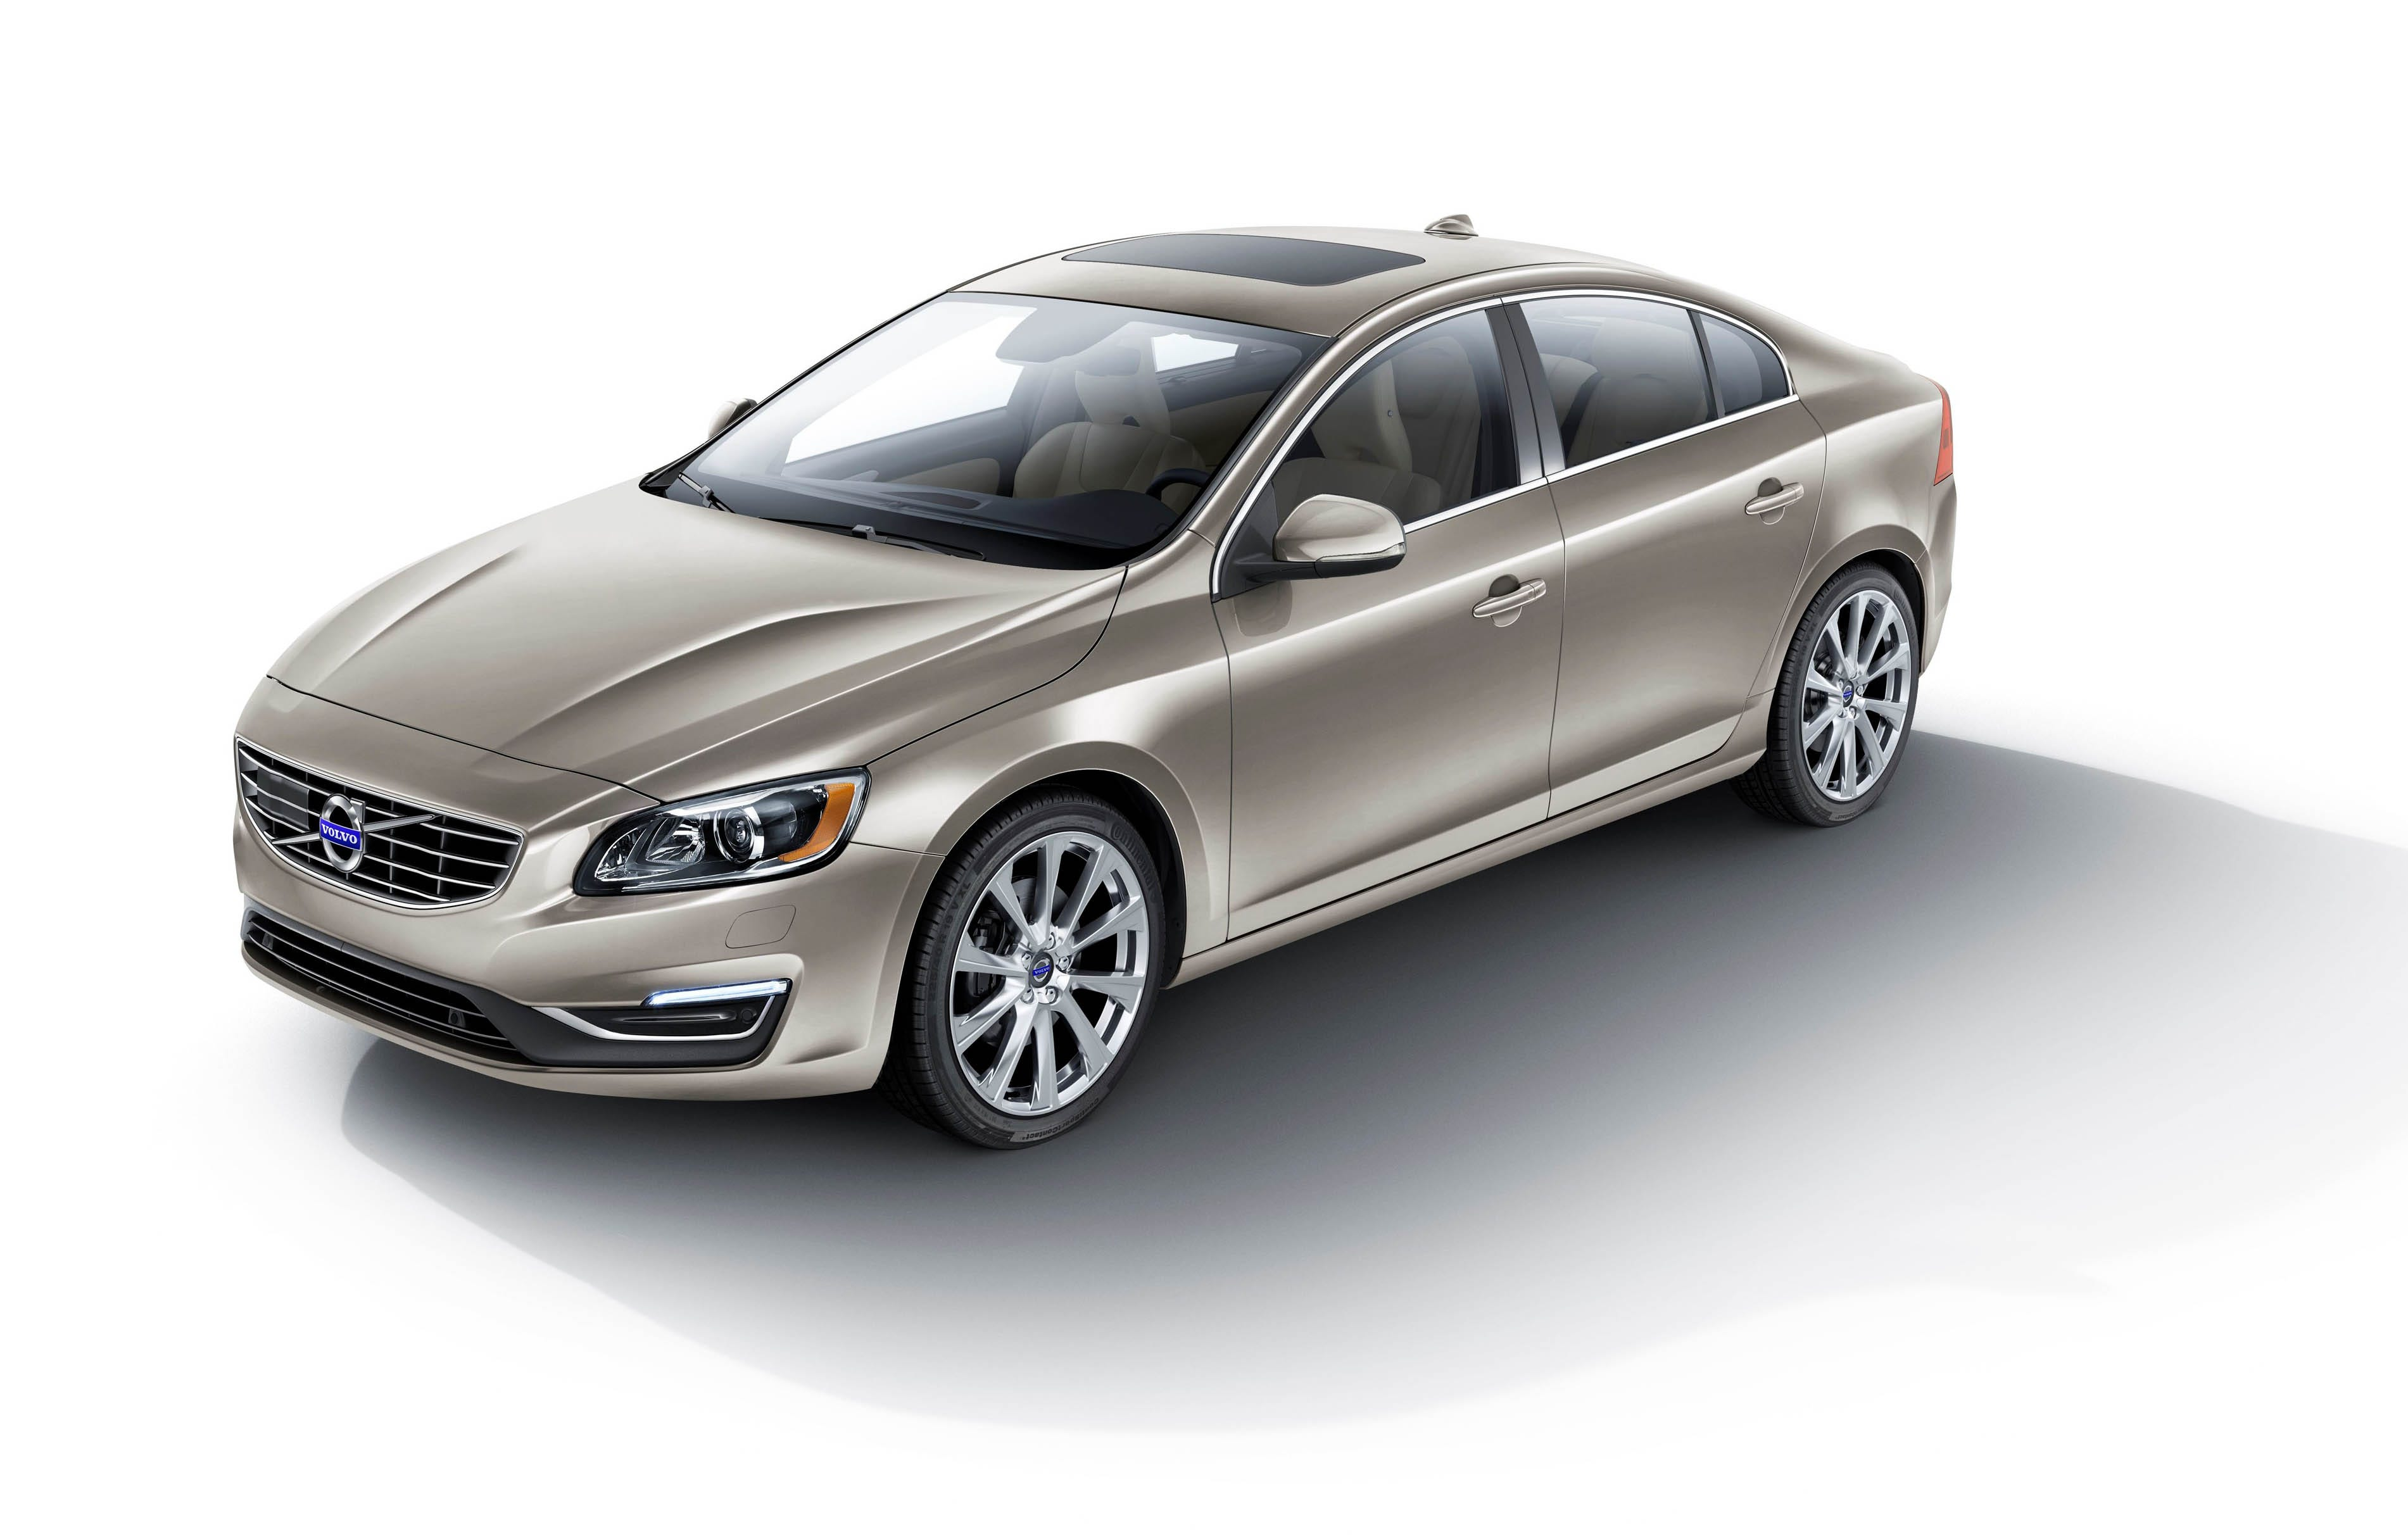 Volvo S60: Voice control support features